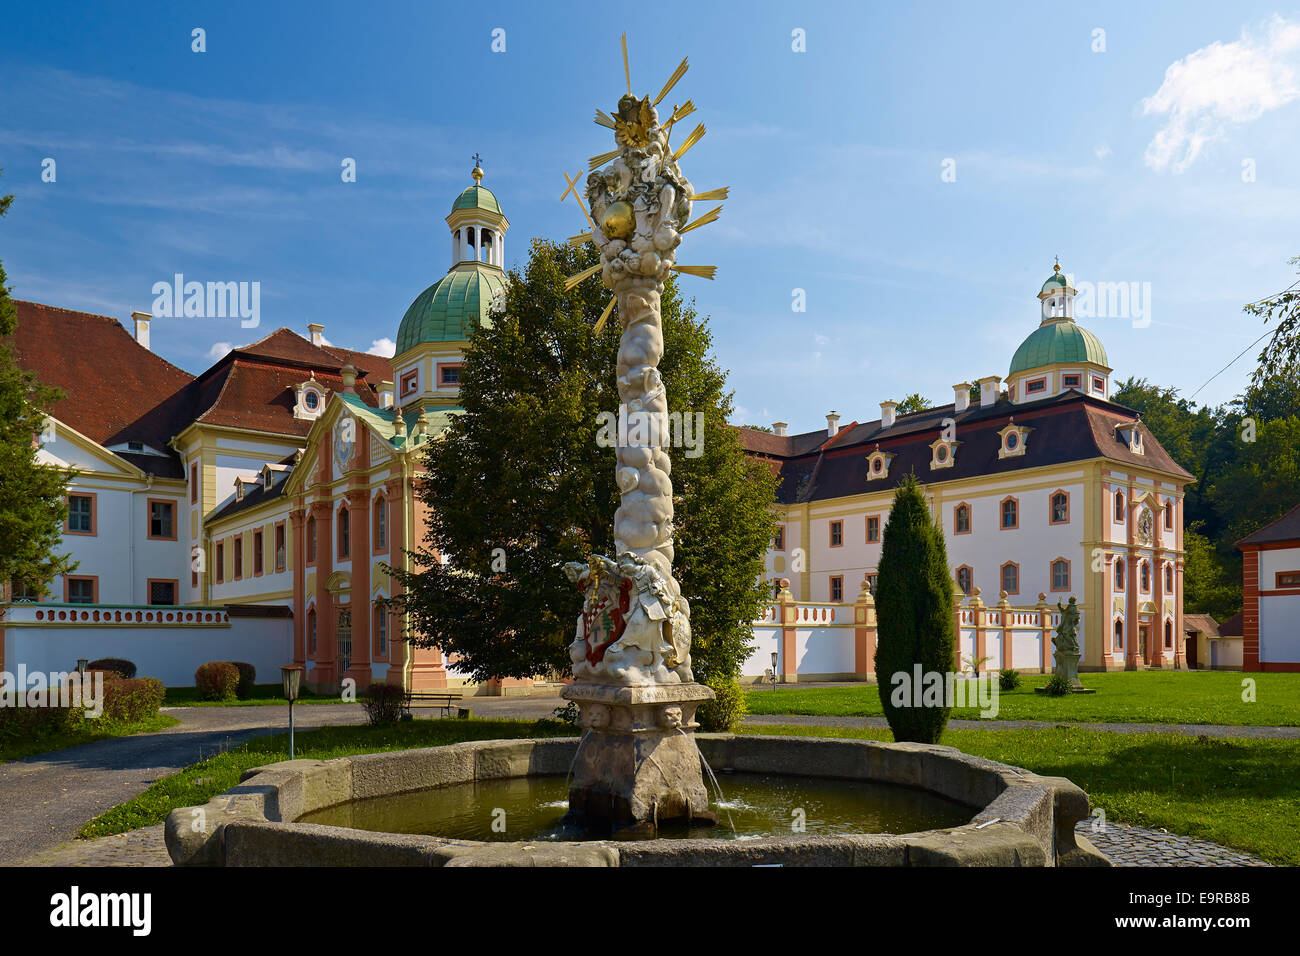 St. Marienthal Abbey at Ostritz with Trinity fountain, Germany - Stock Image